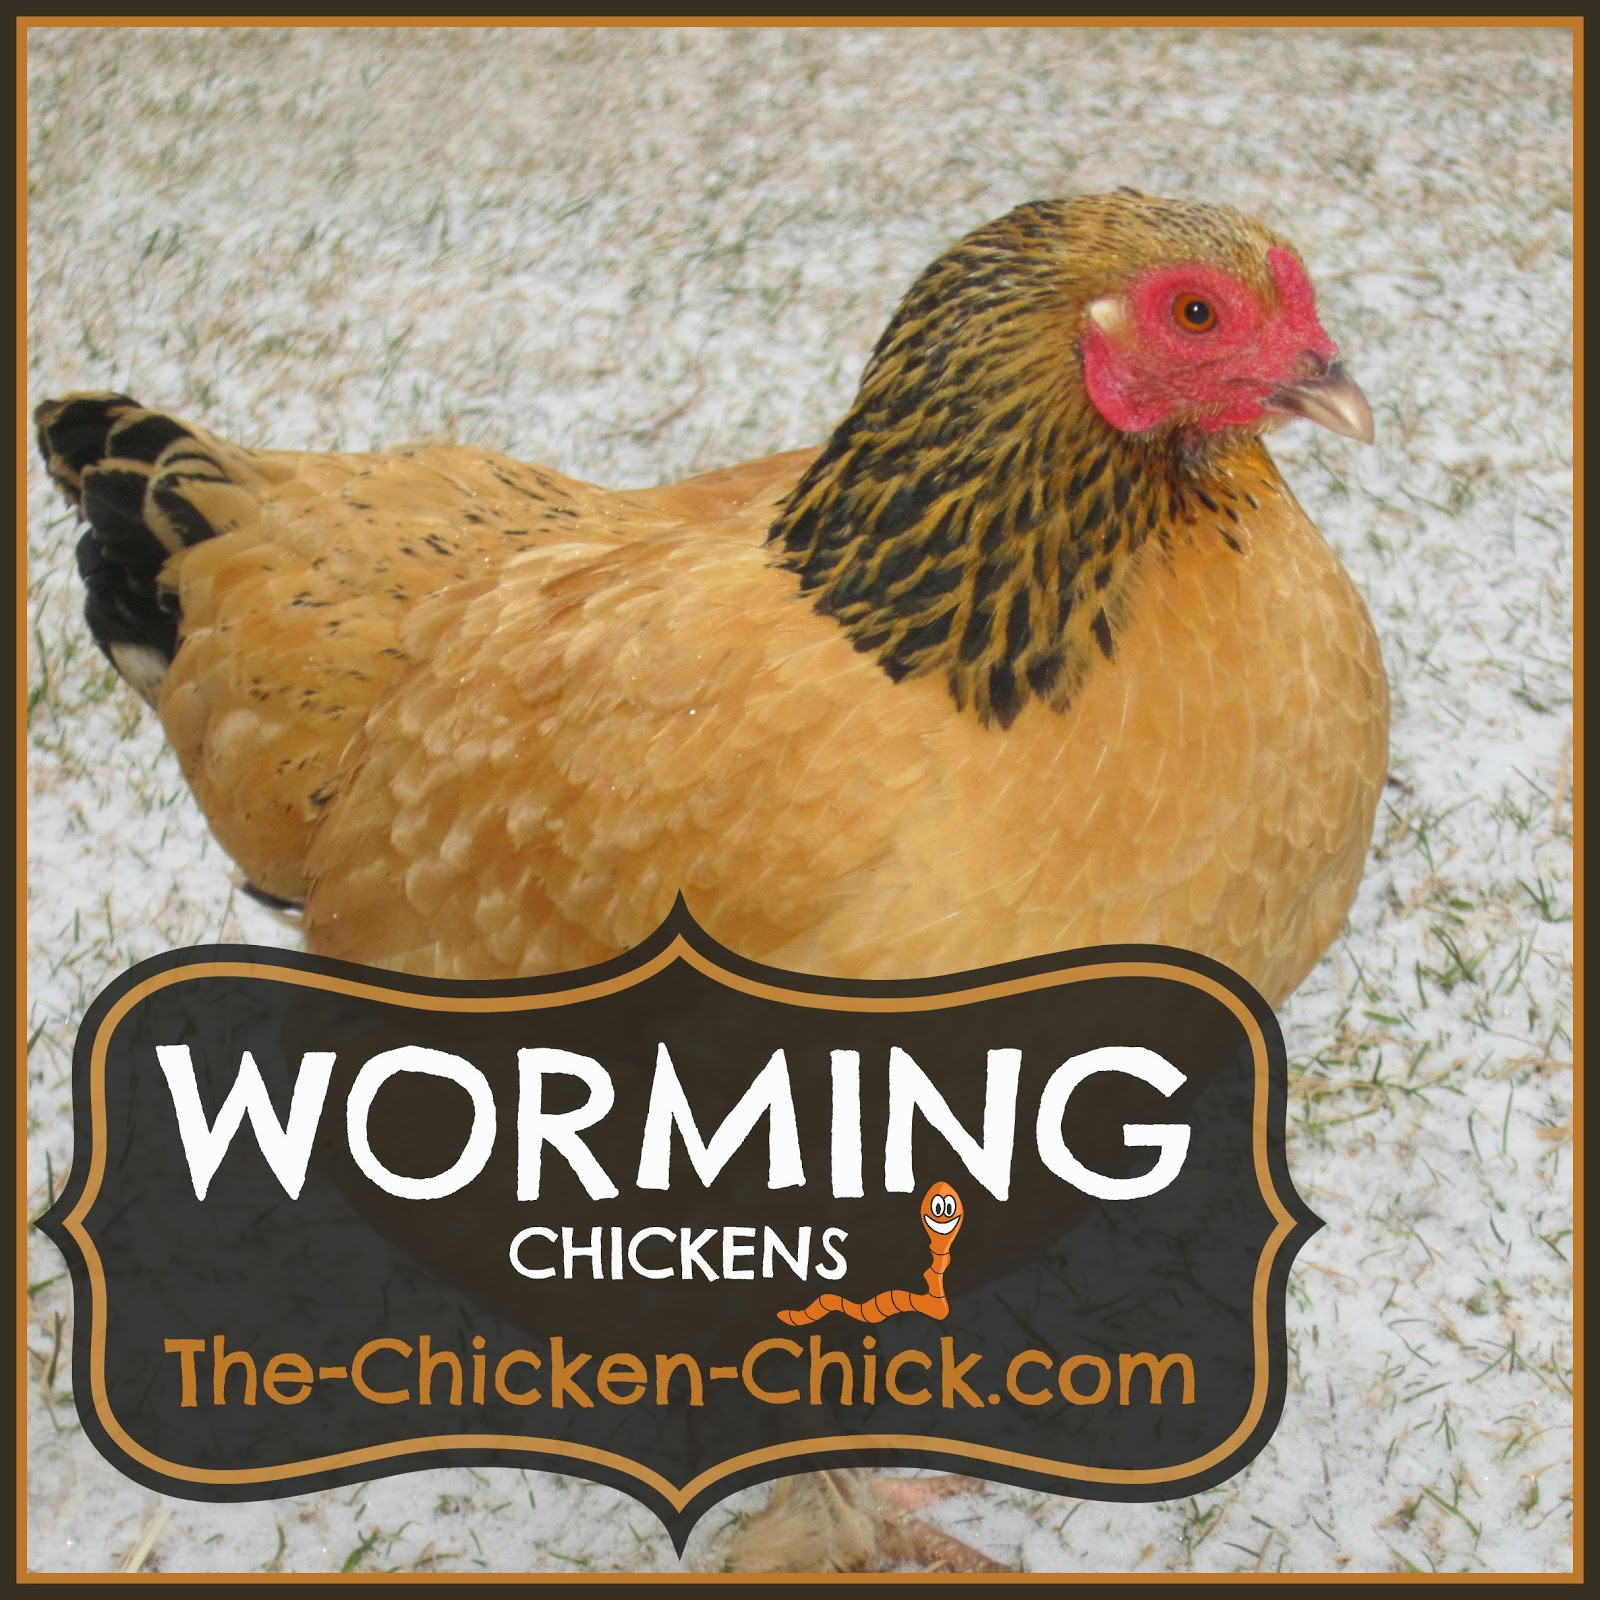 WORMING Chickens